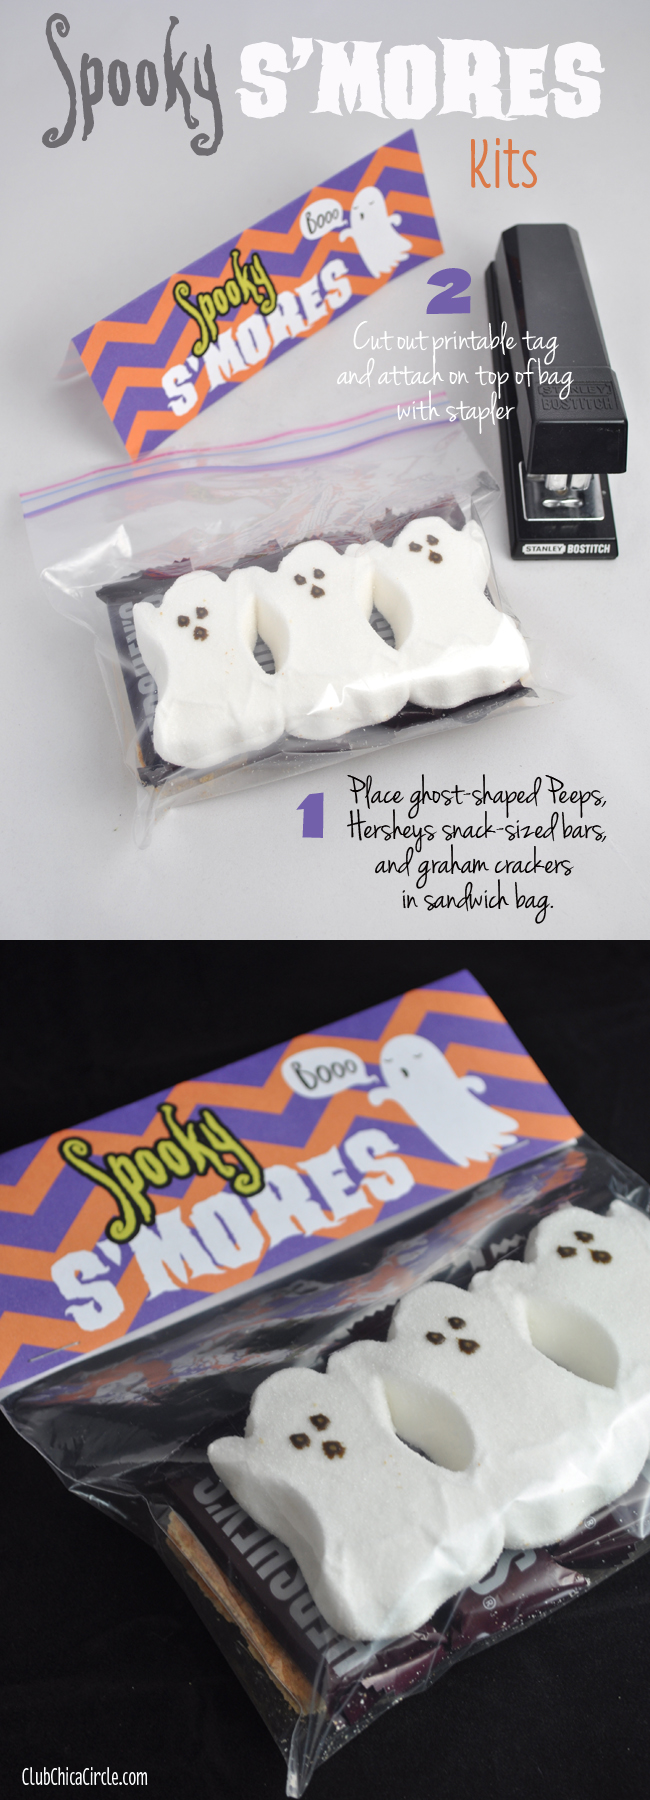 Spooky S'mores Kits with Free Printable | Club Chica Circle - where ...